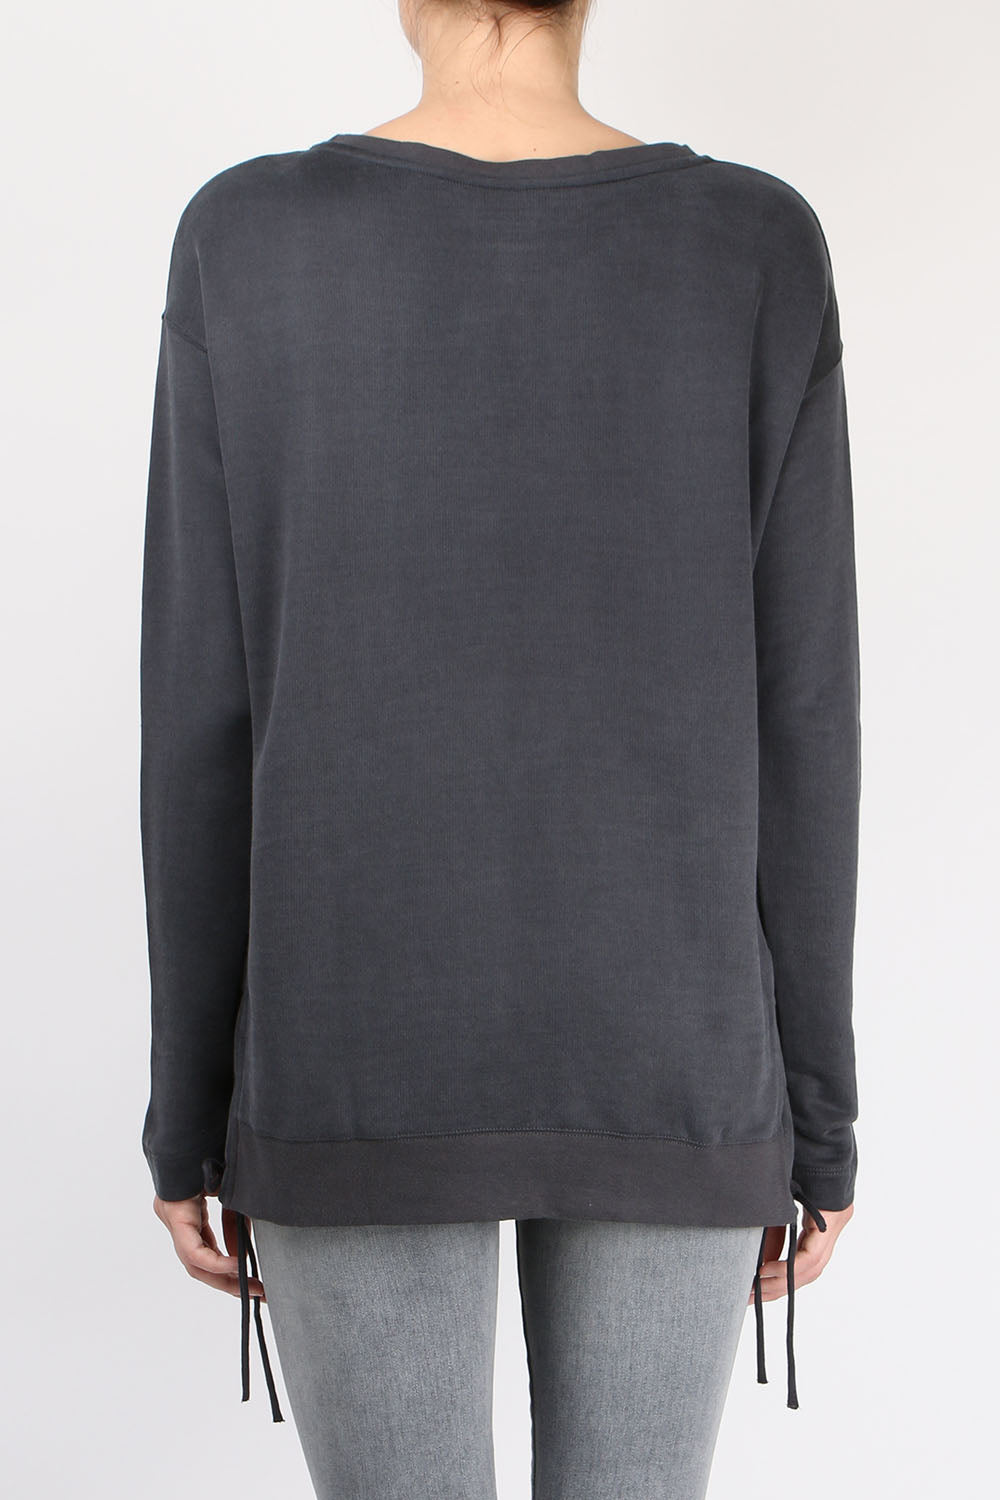 Majestic Filatures Boatneck with Side Ties